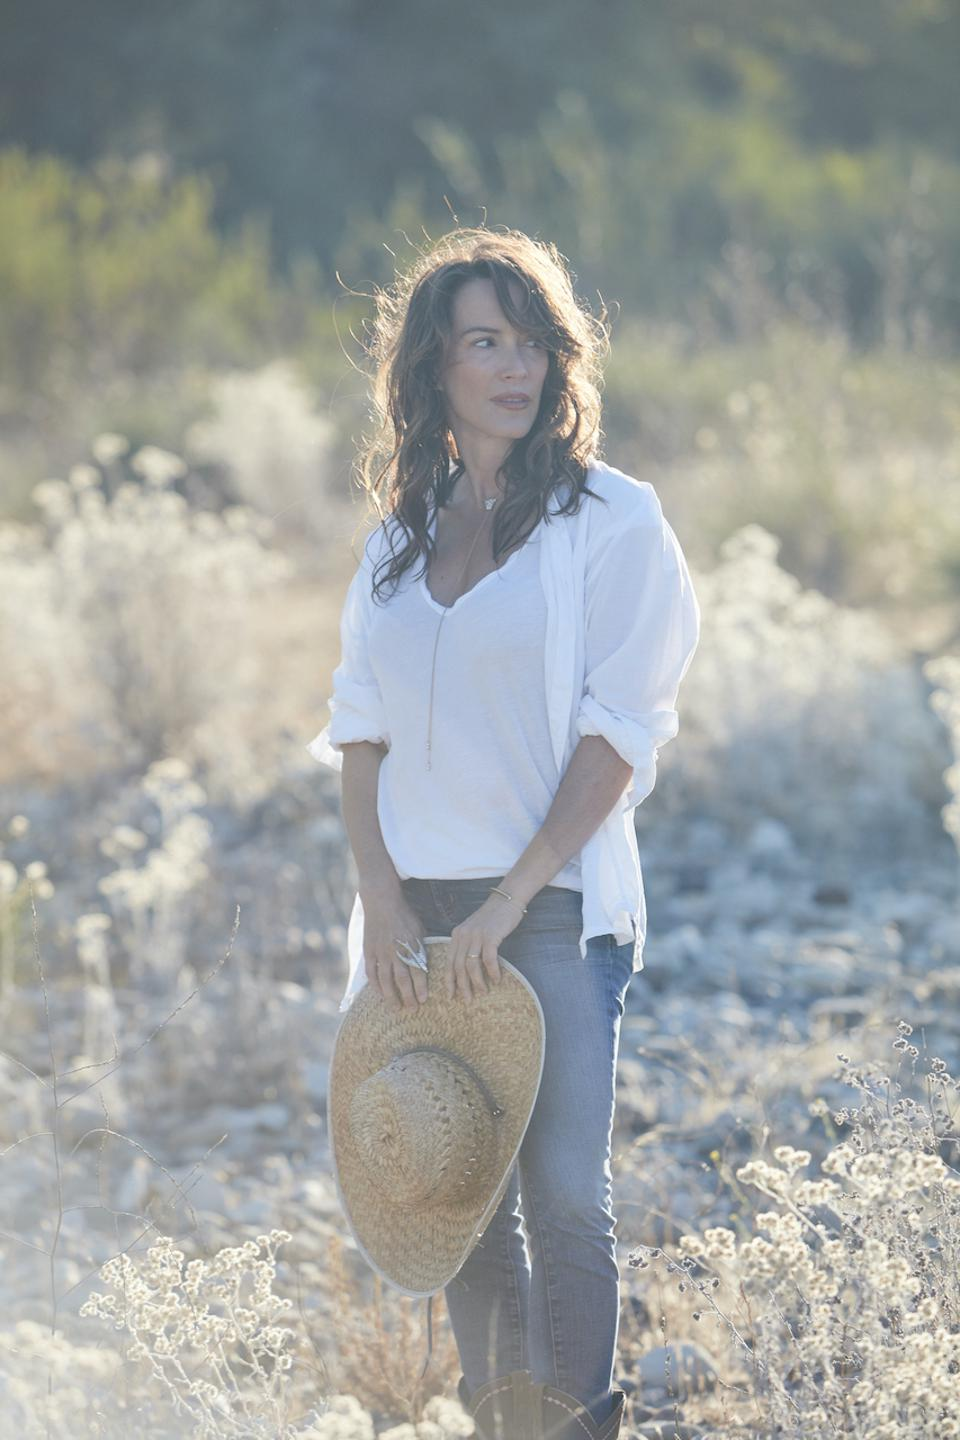 Sara Rotman, Founder and CEO of Wellfounded Botanicals.